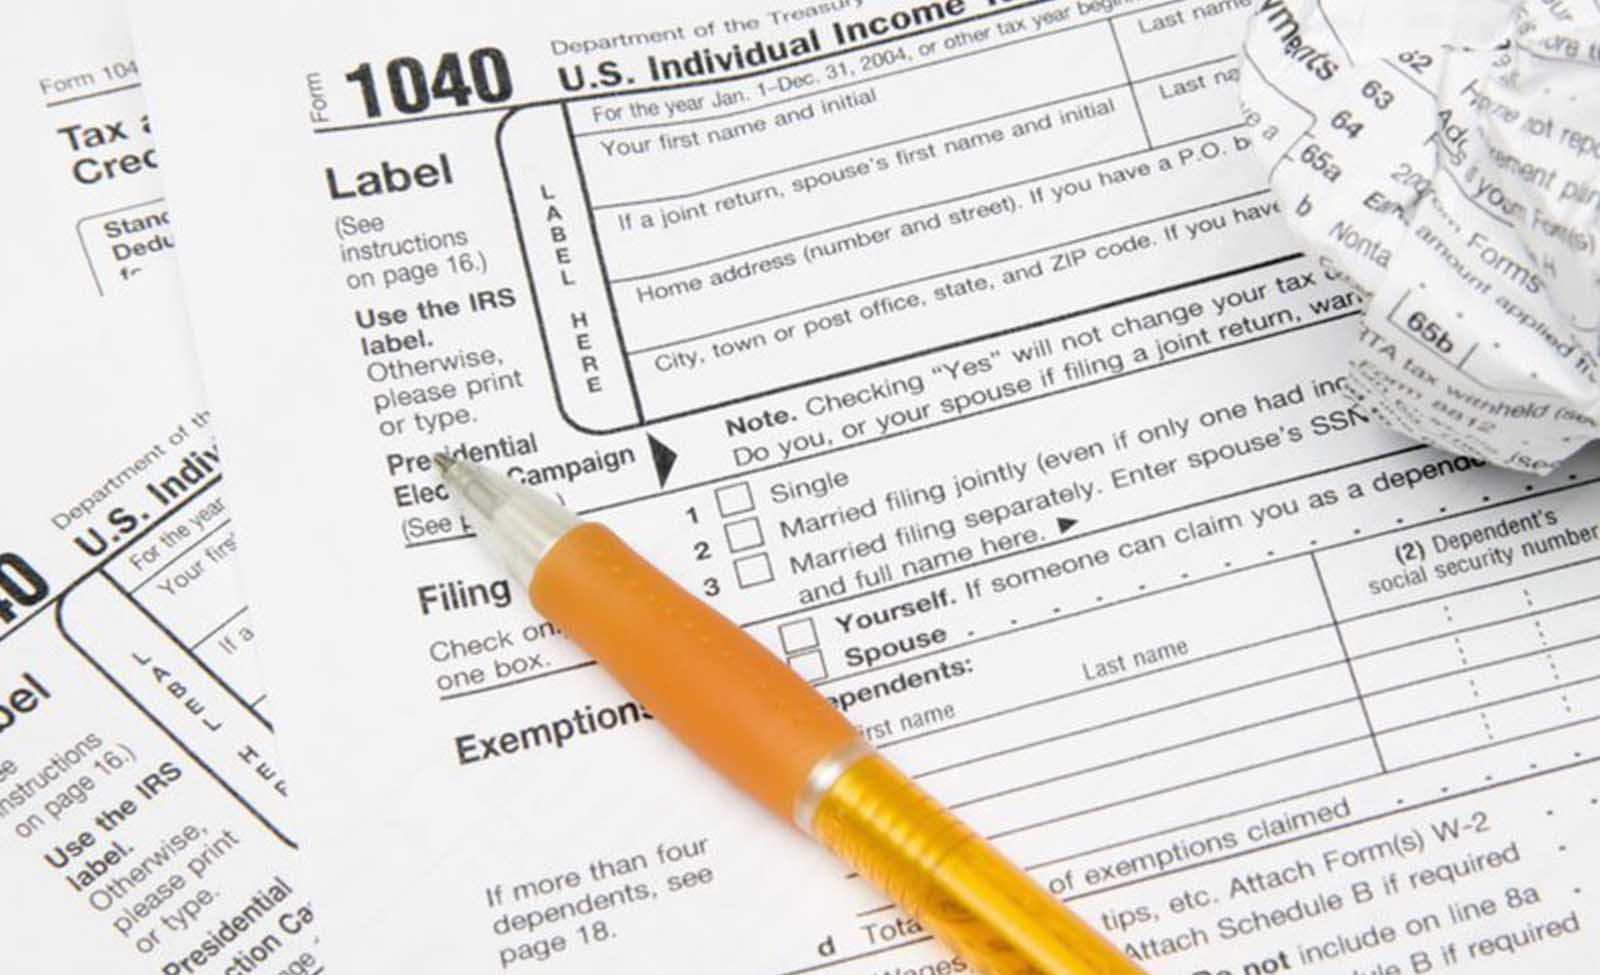 These are the top Form 1099 mistakes to avoid.